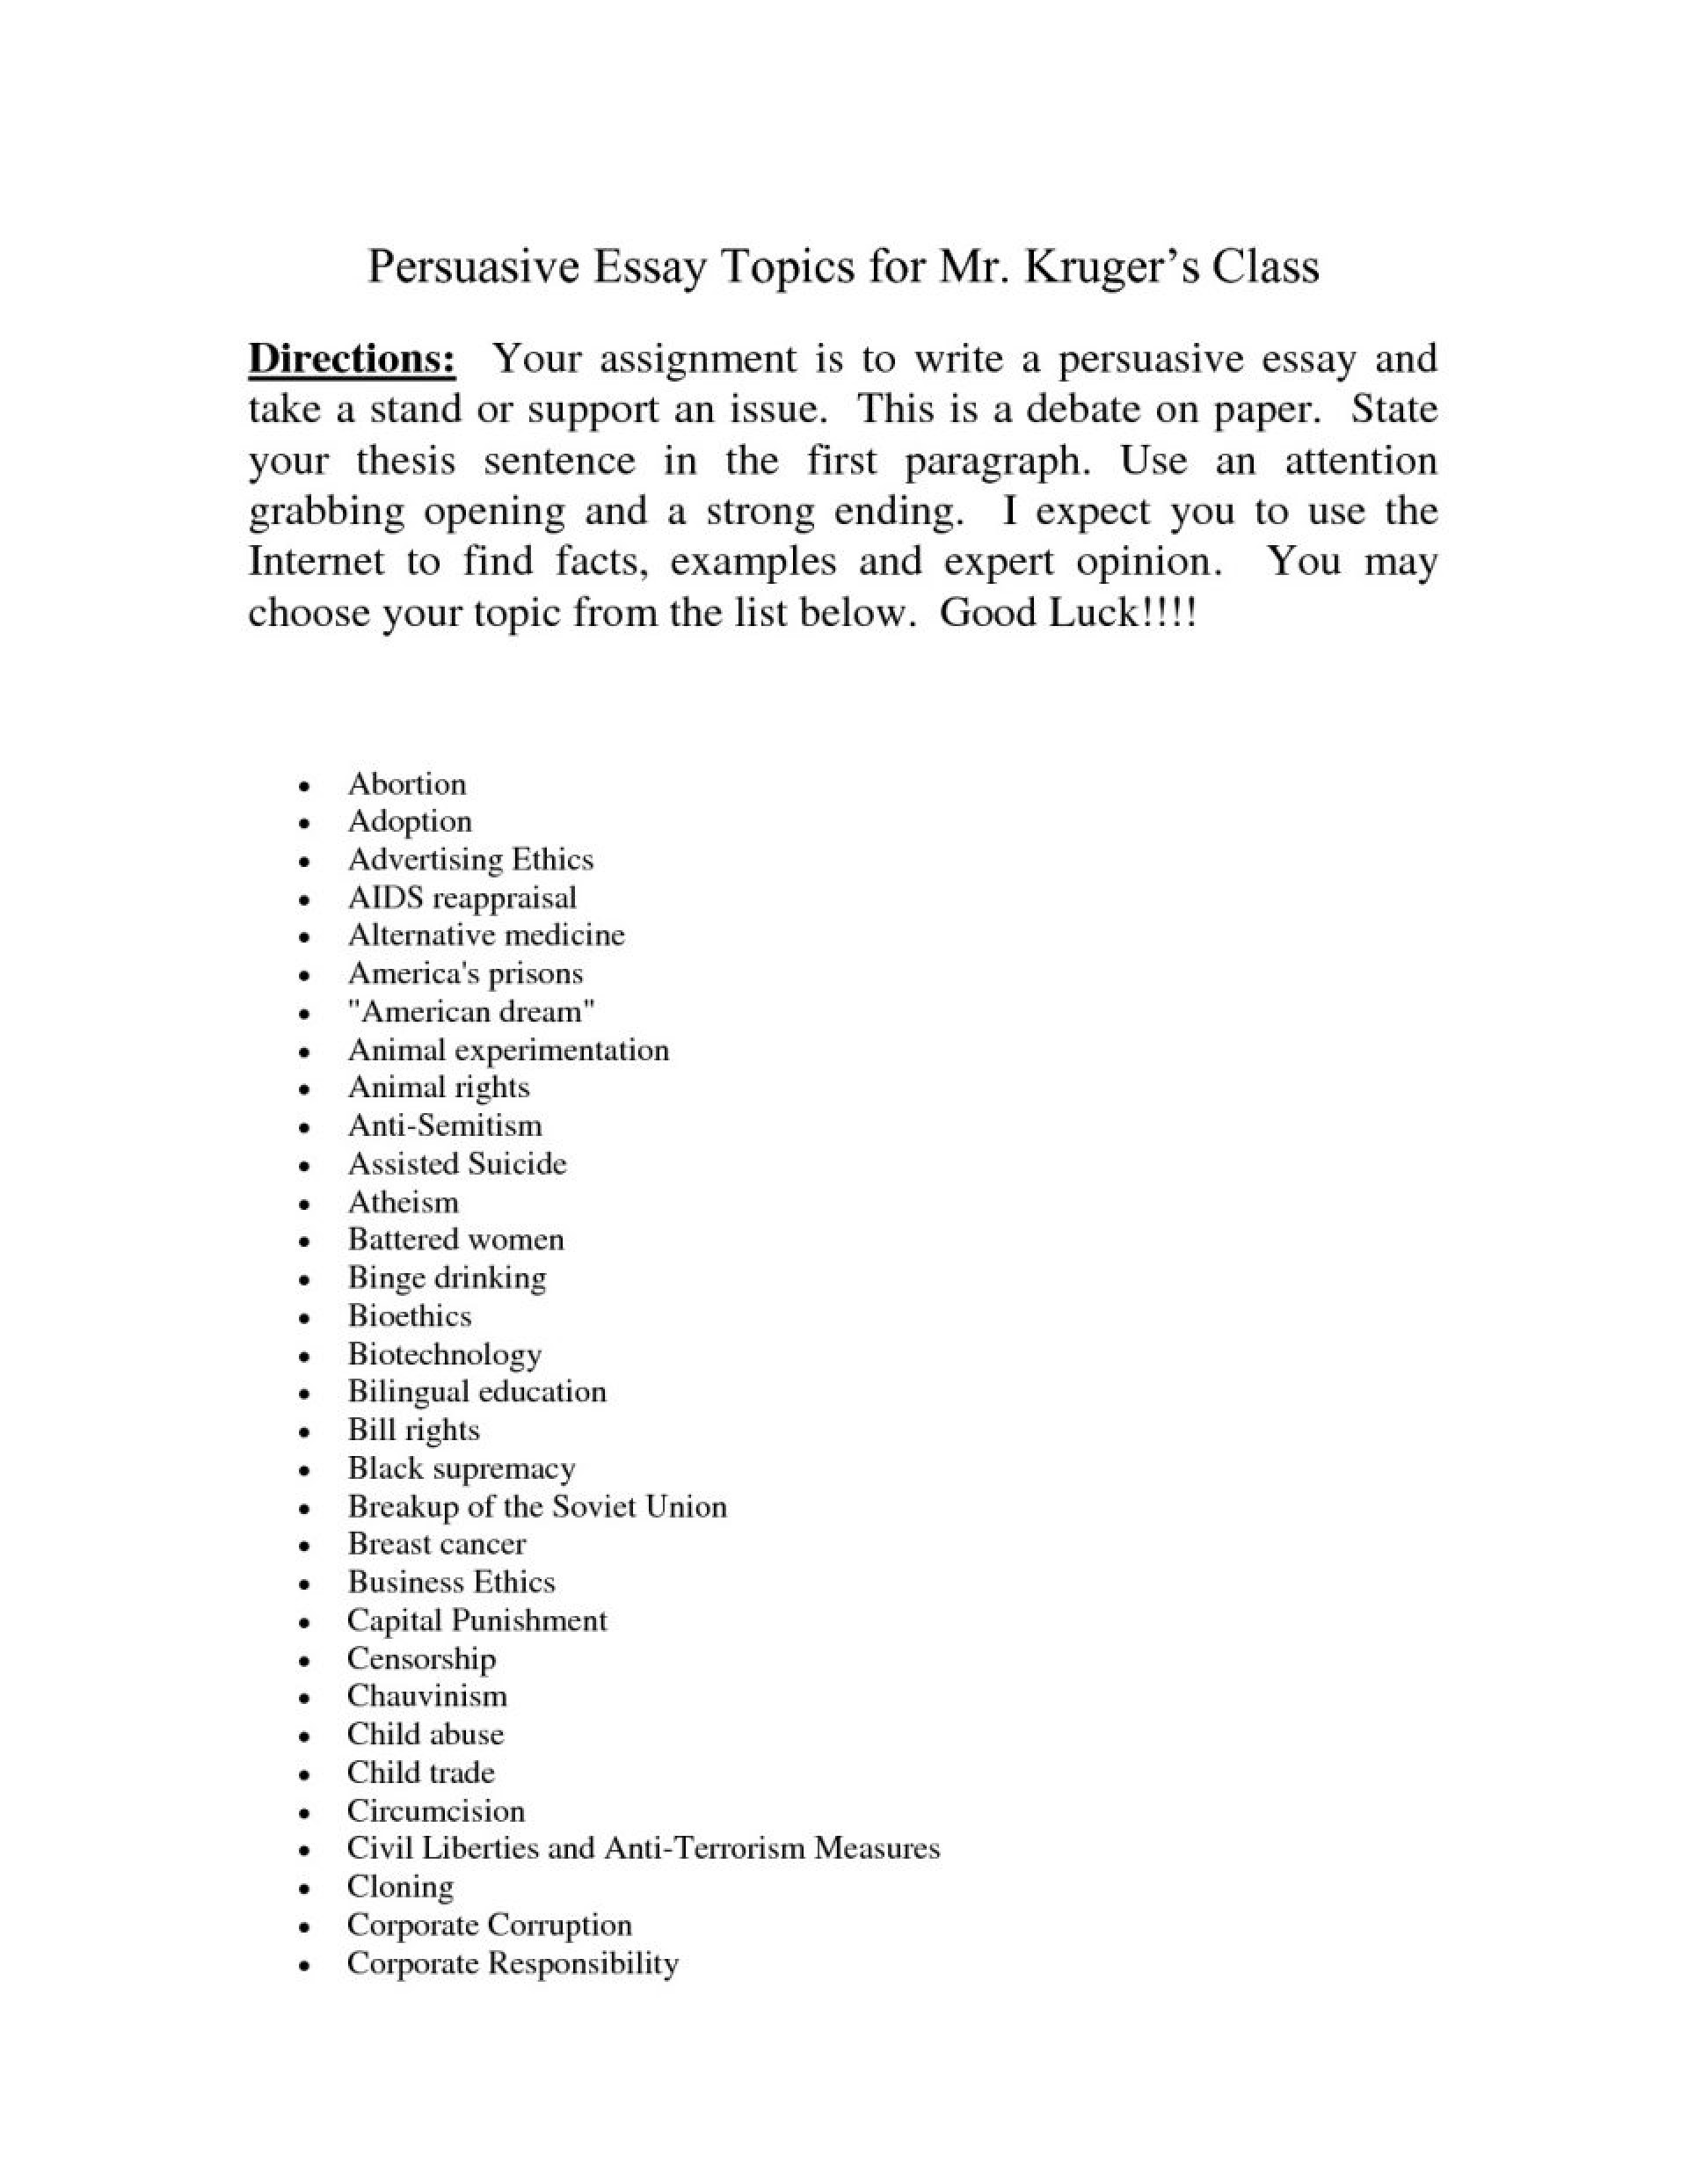 011 Research Paper Good Topic For Essay Barca Fontanacountryinn Within Persuasive Narrative Topics To Write Abo Easy About Personal Descriptive Informative Singular Best Ideas History High School Students In The Philippines 1920